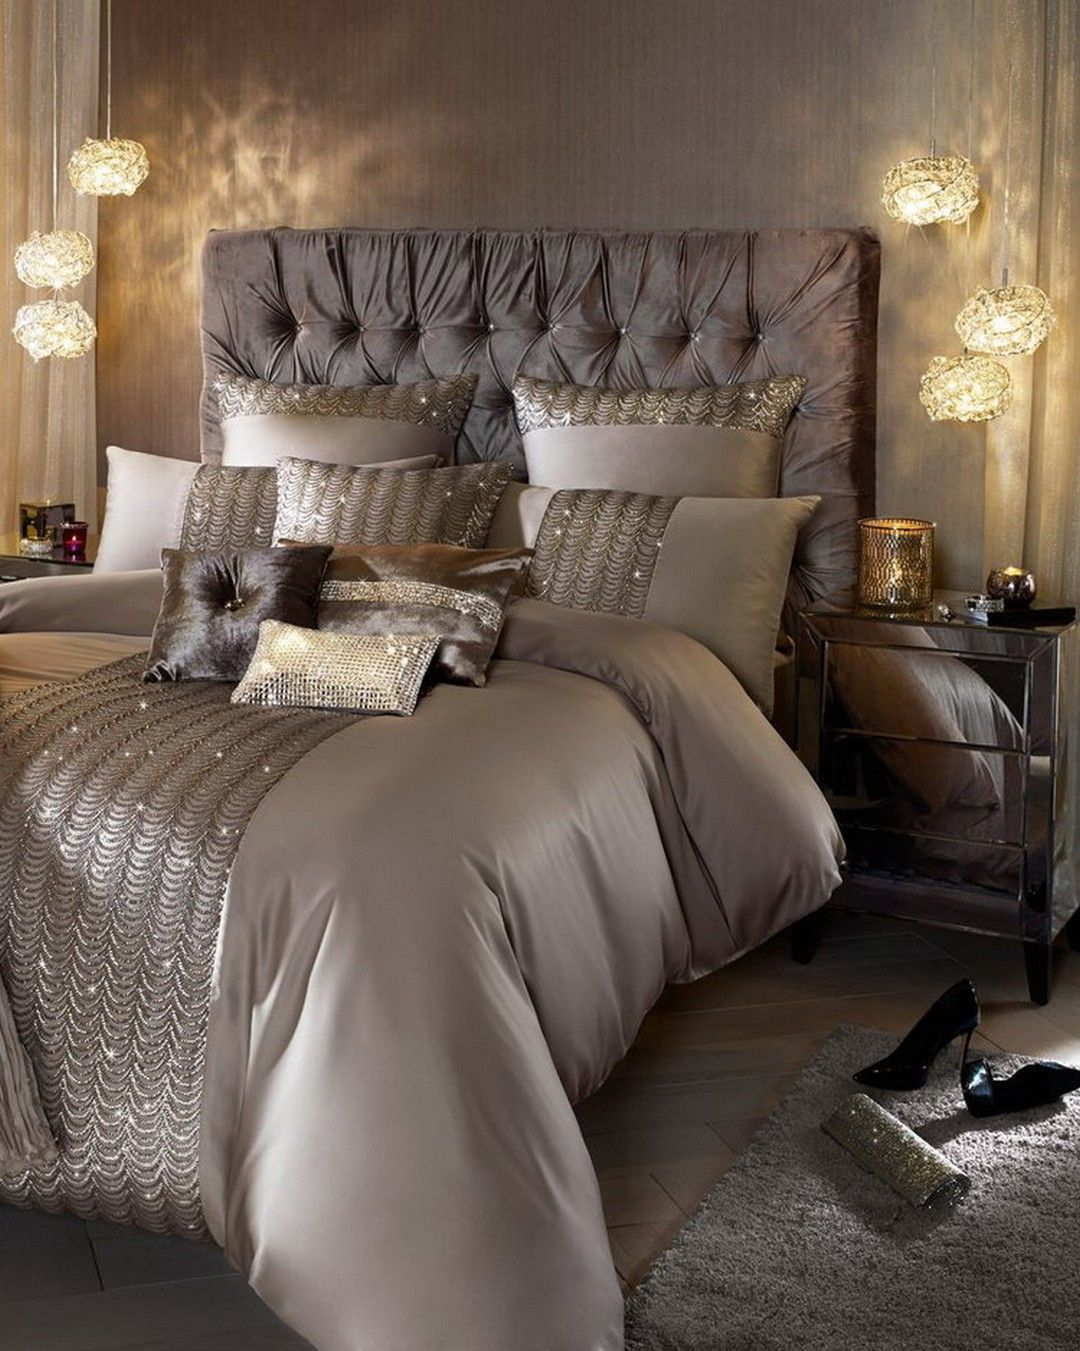 Cozy romantic bedroom - 77 Best Ideas To Make Your Bedroom Extra Cozy And Romantic